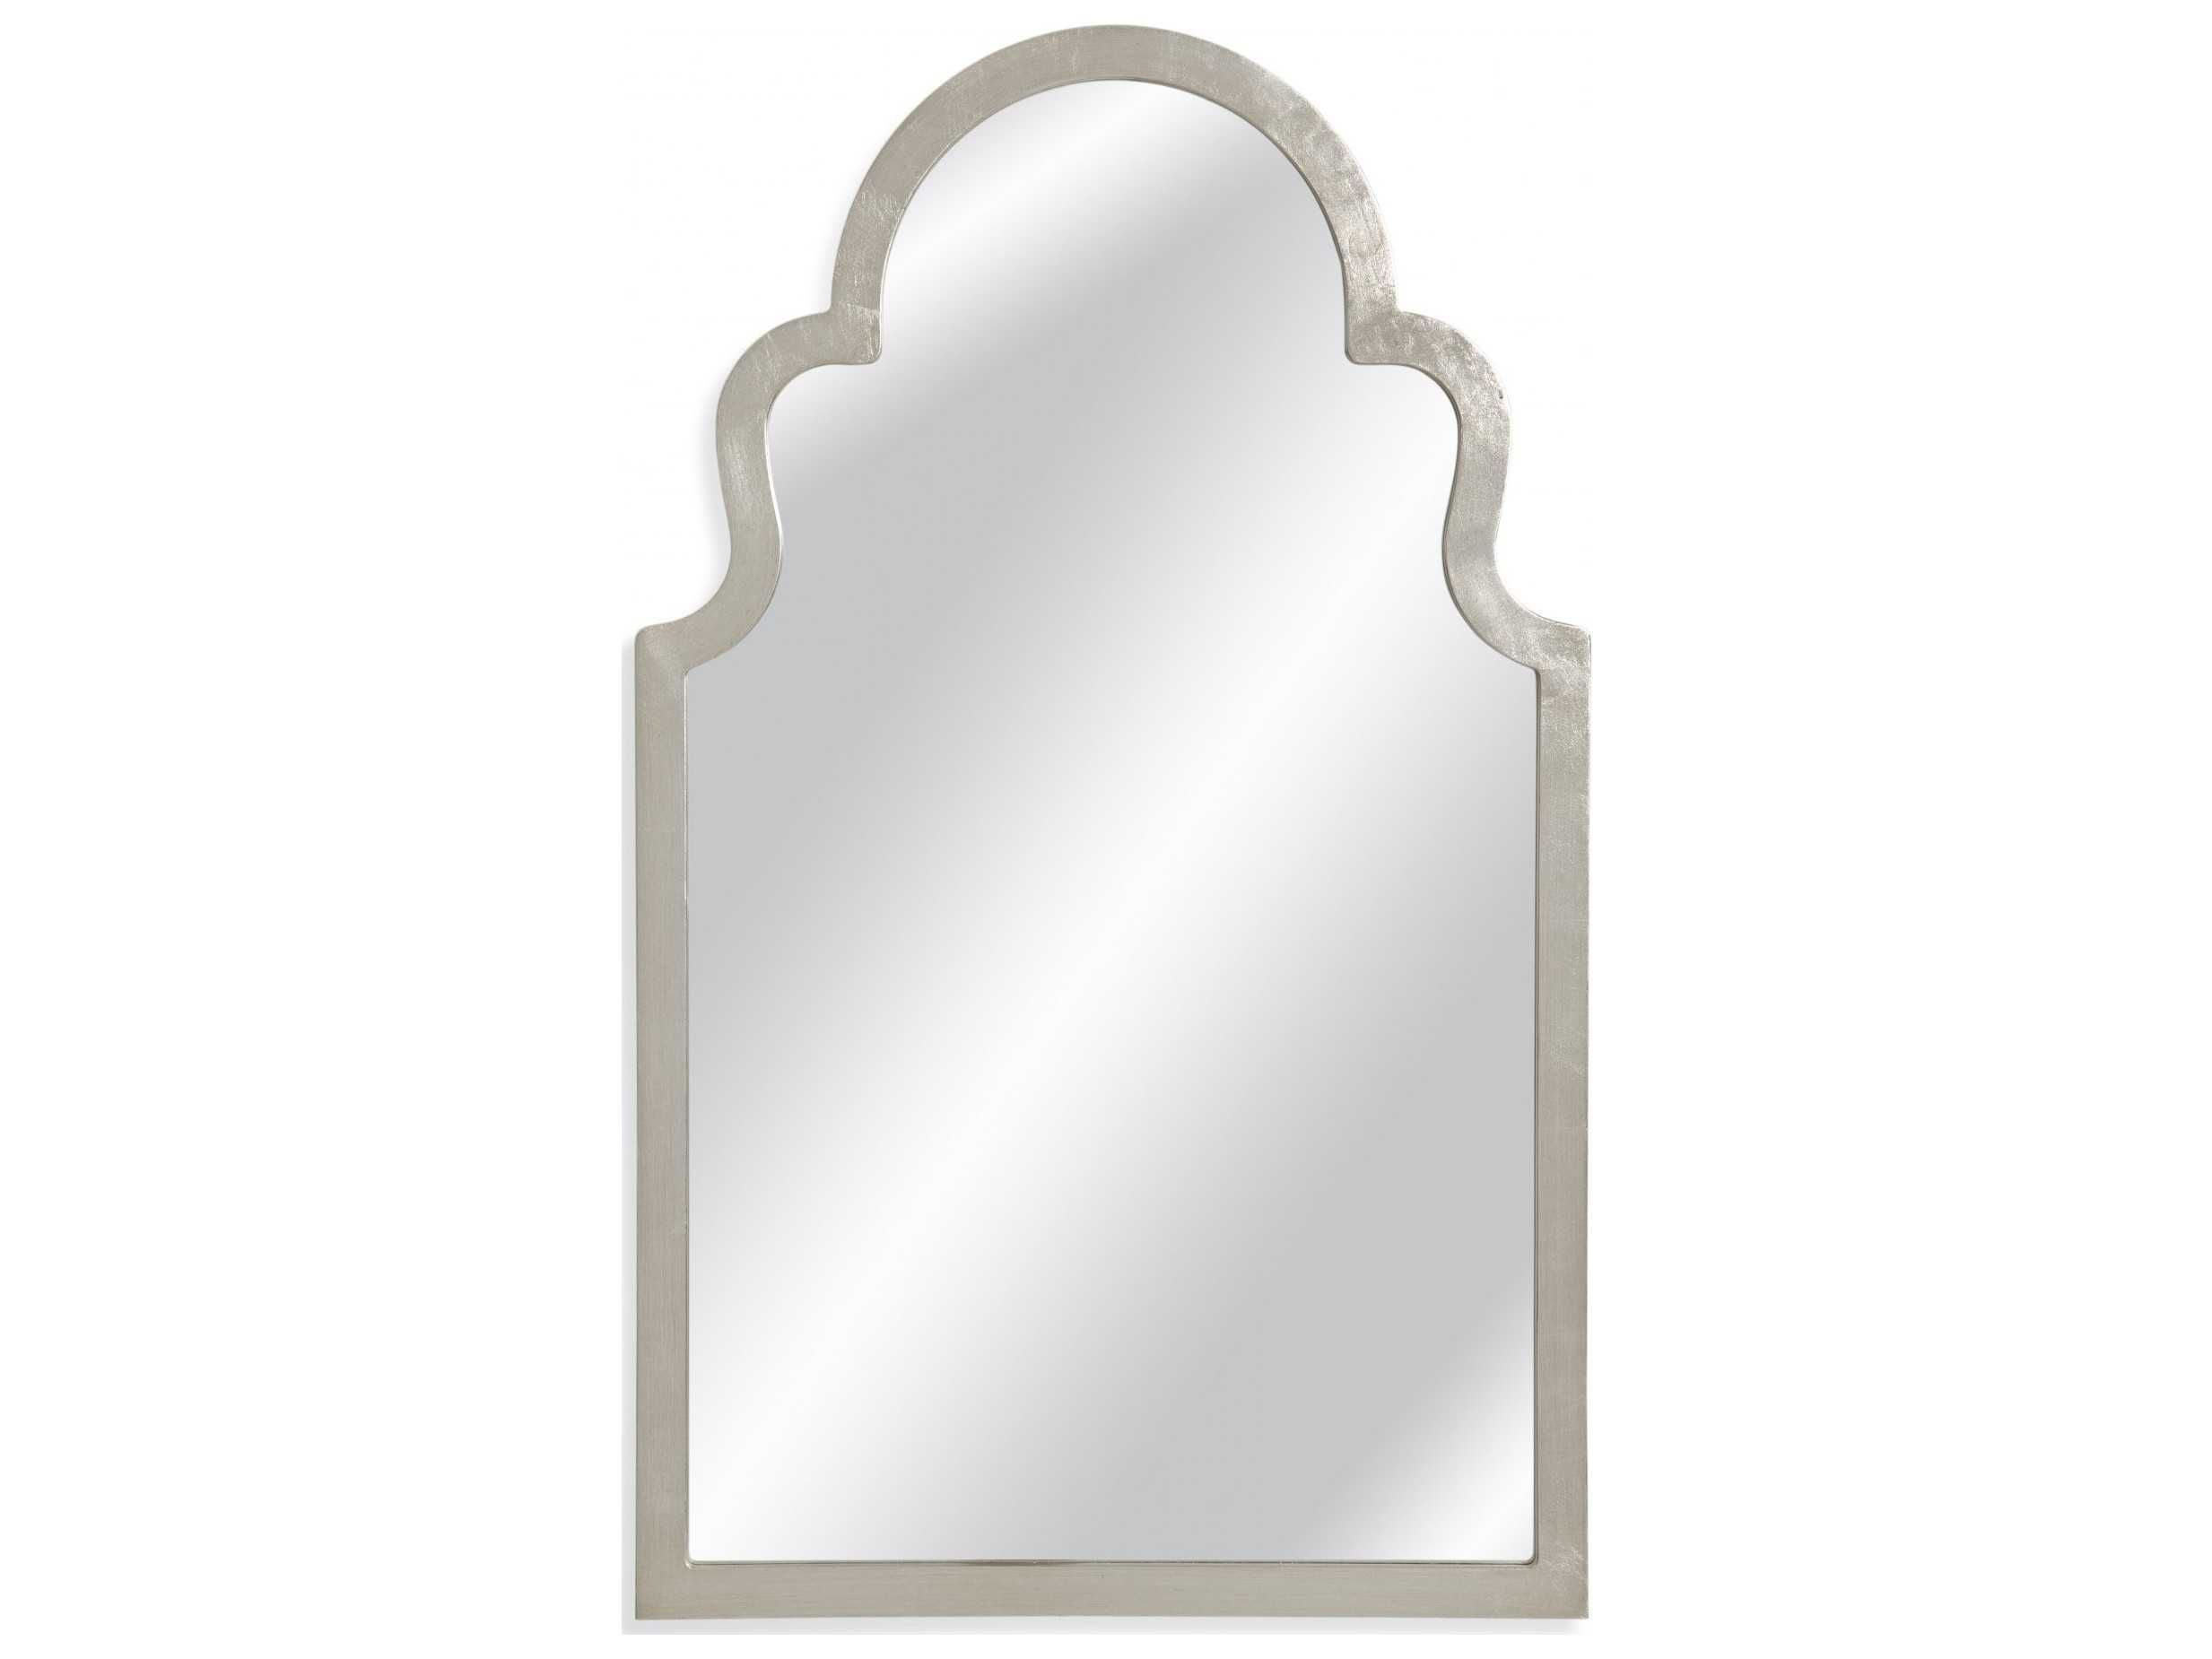 Bassett Mirror Old World 24 X 40 Mina Wall Mirror | Master Pertaining To Moseley Accent Mirrors (View 4 of 20)